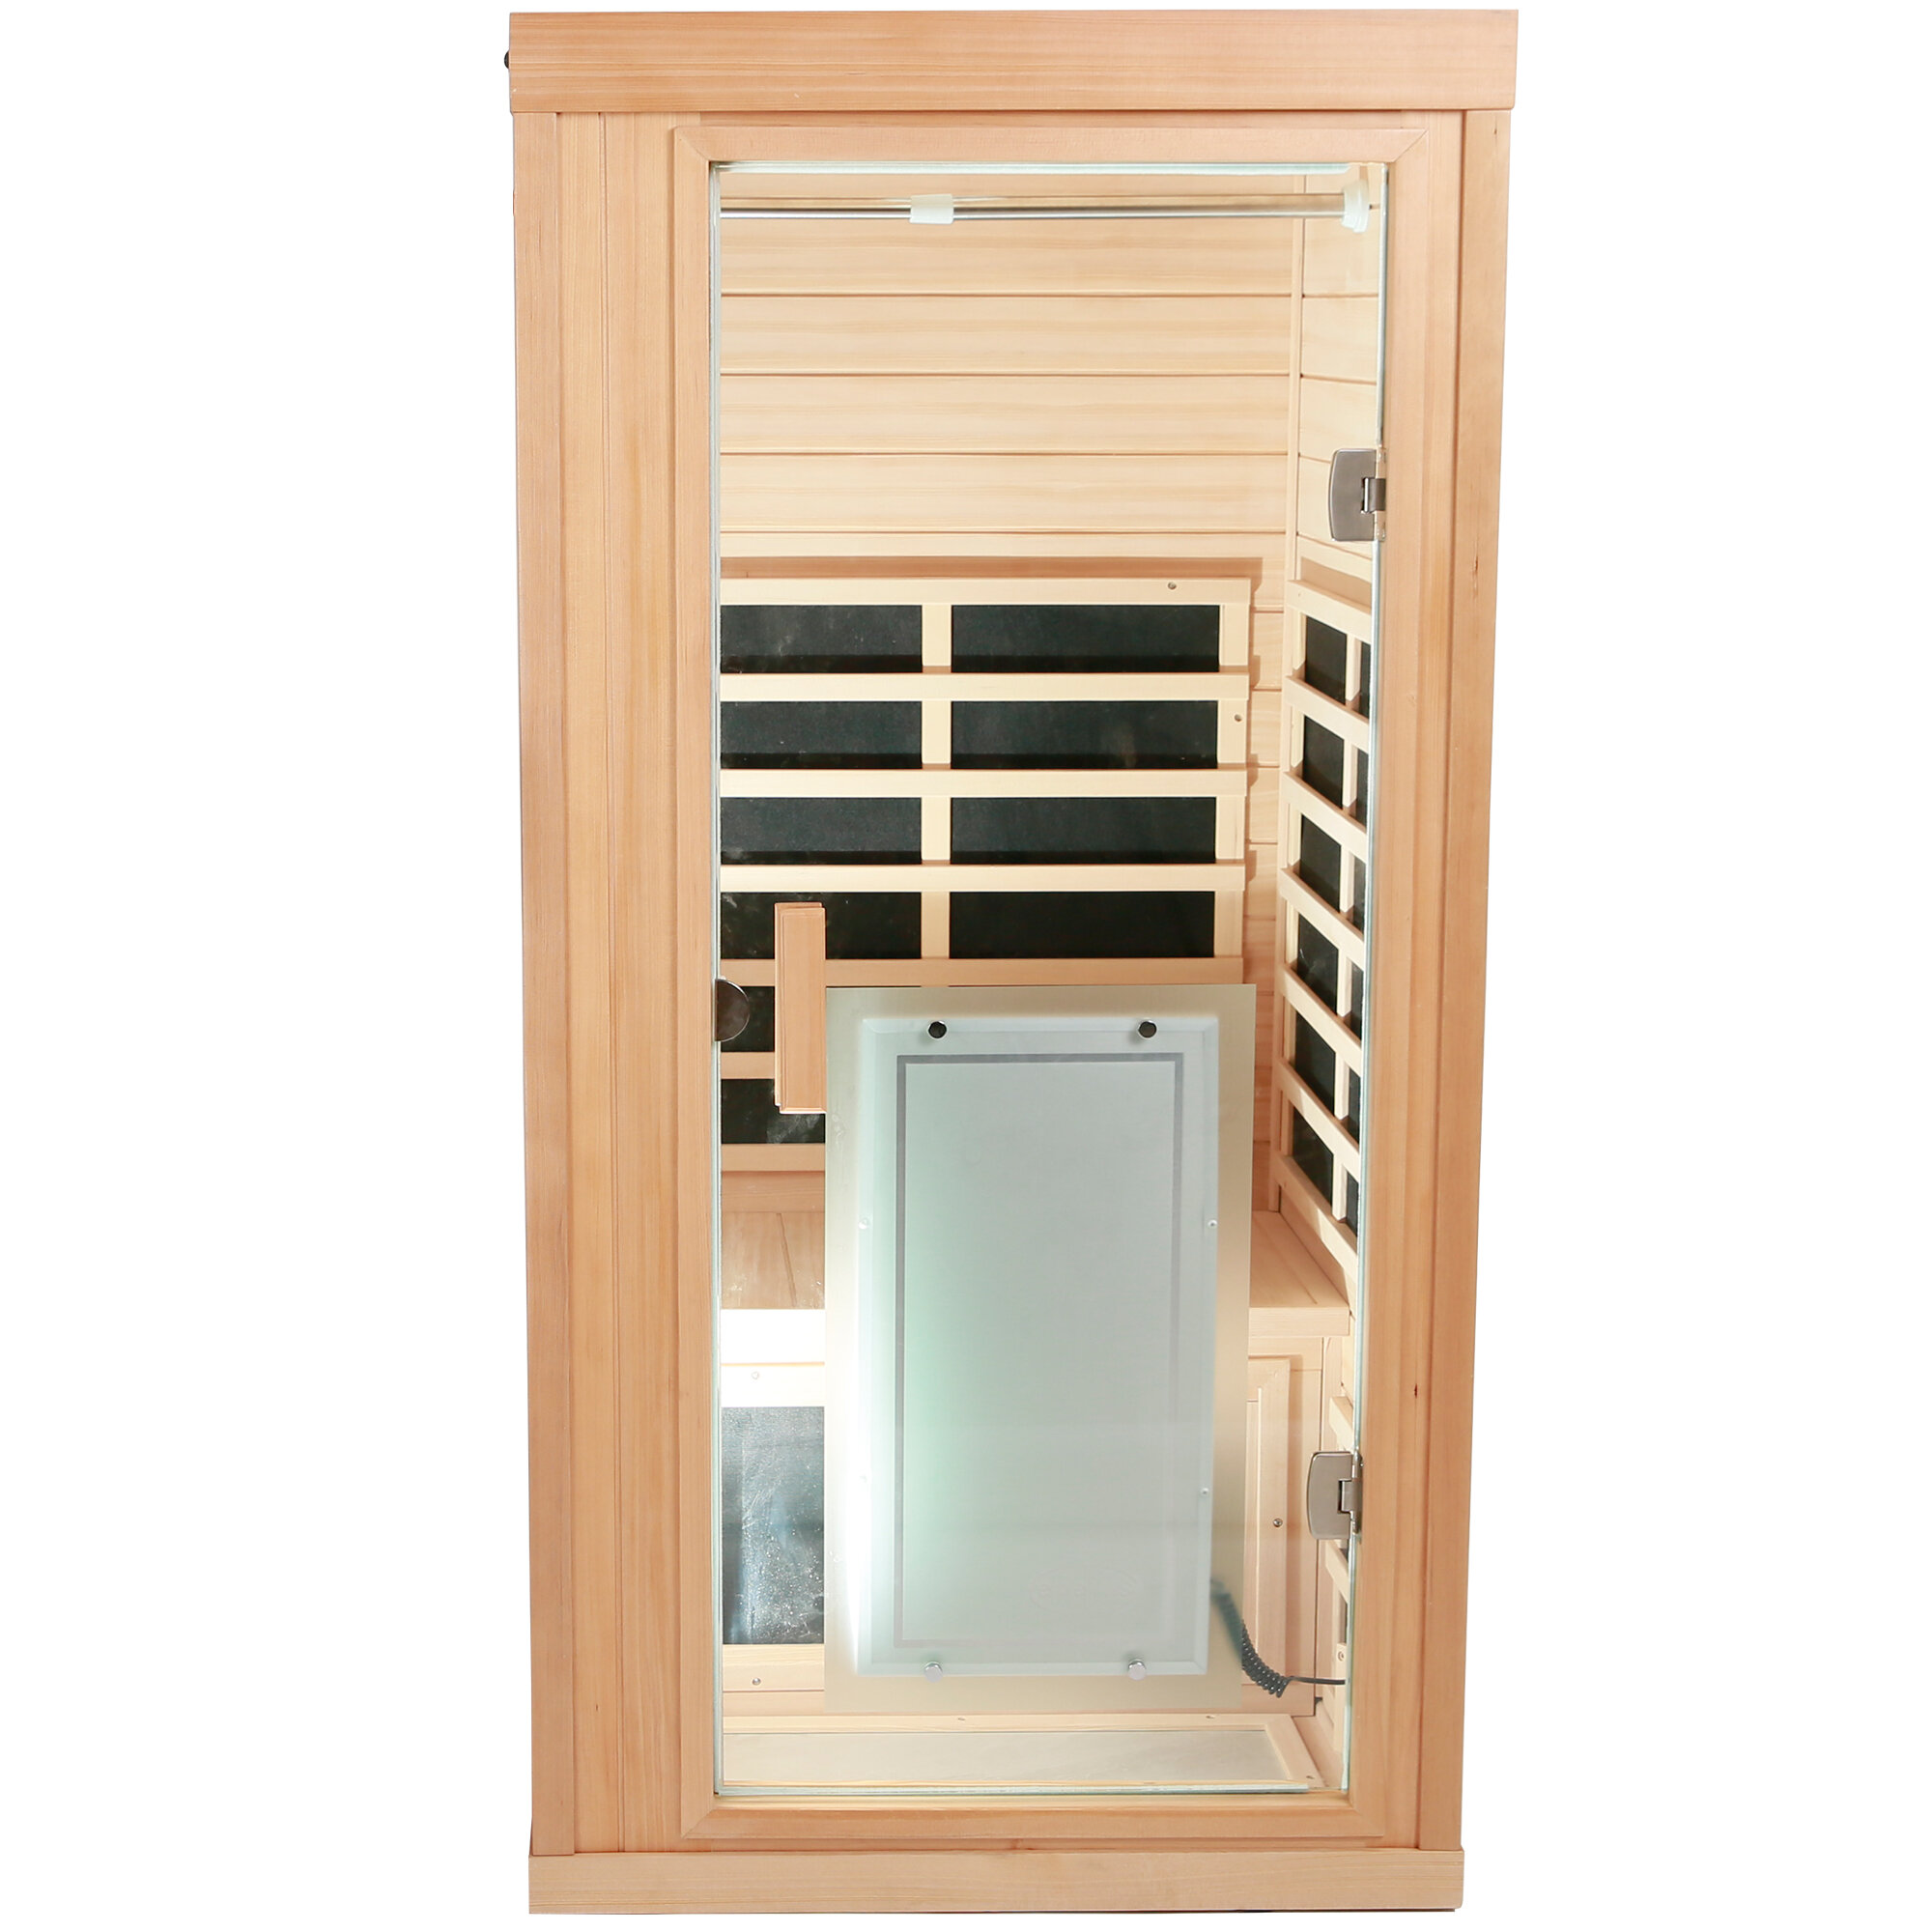 Magic Home Mini Wooden 1 Person Far Infrared Sauna Wayfair